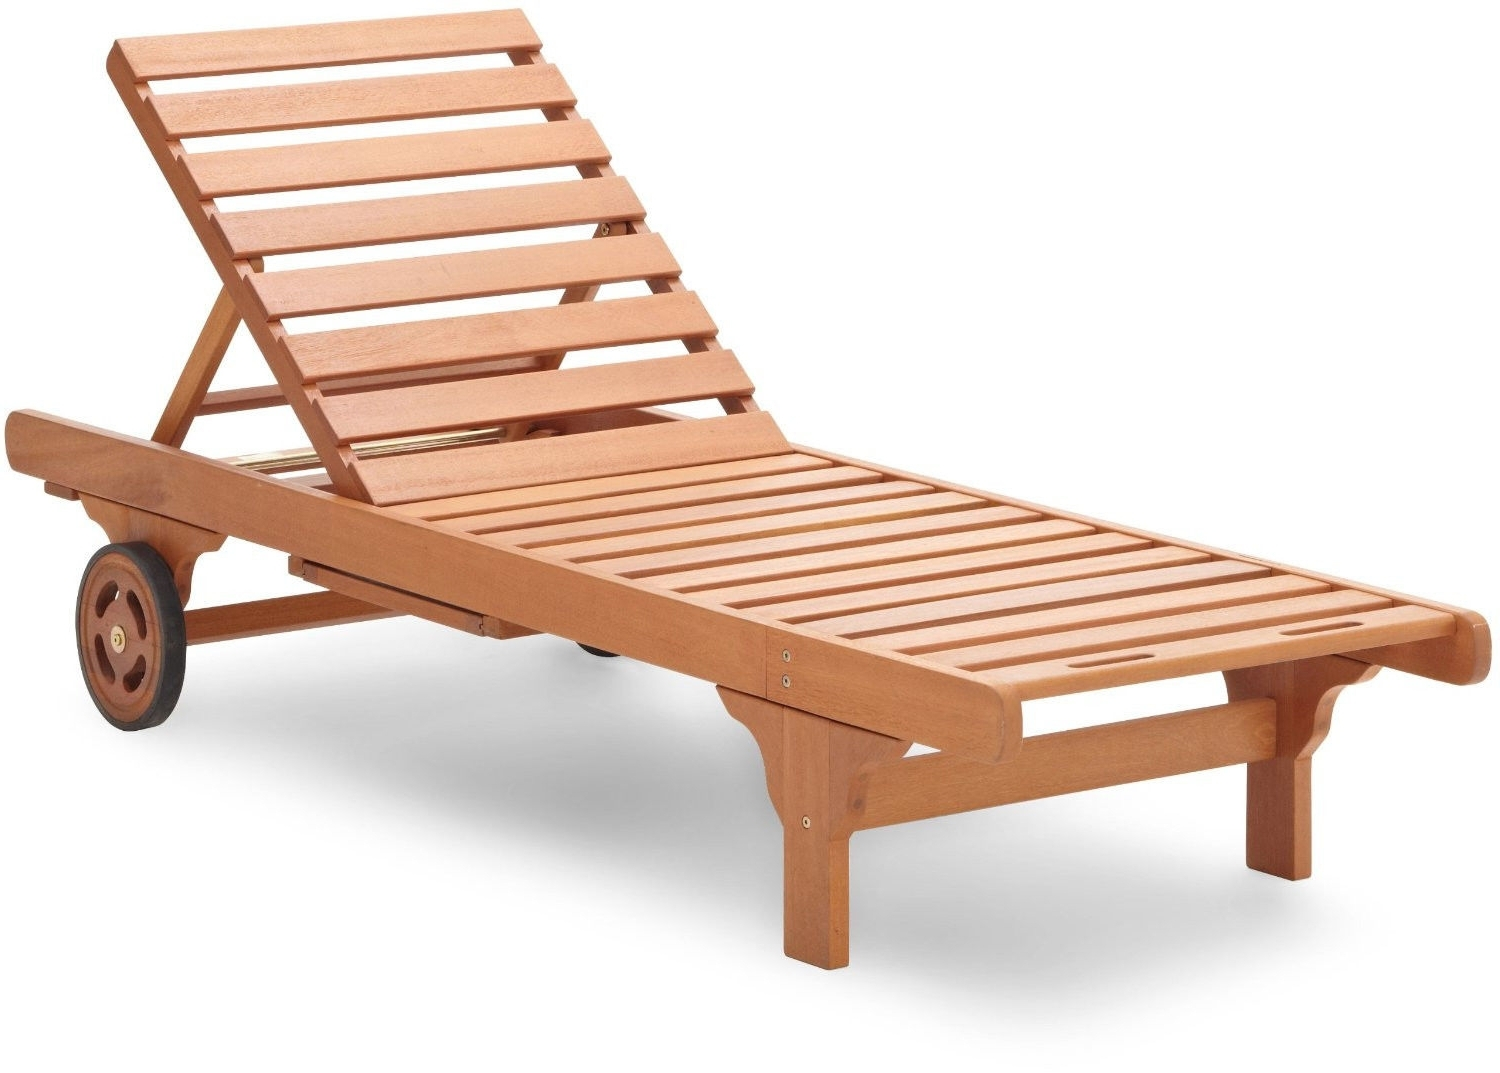 Most Recent Wood Chaise Lounges Throughout Wood Chaise Lounge Chairs • Lounge Chairs Ideas (View 5 of 15)